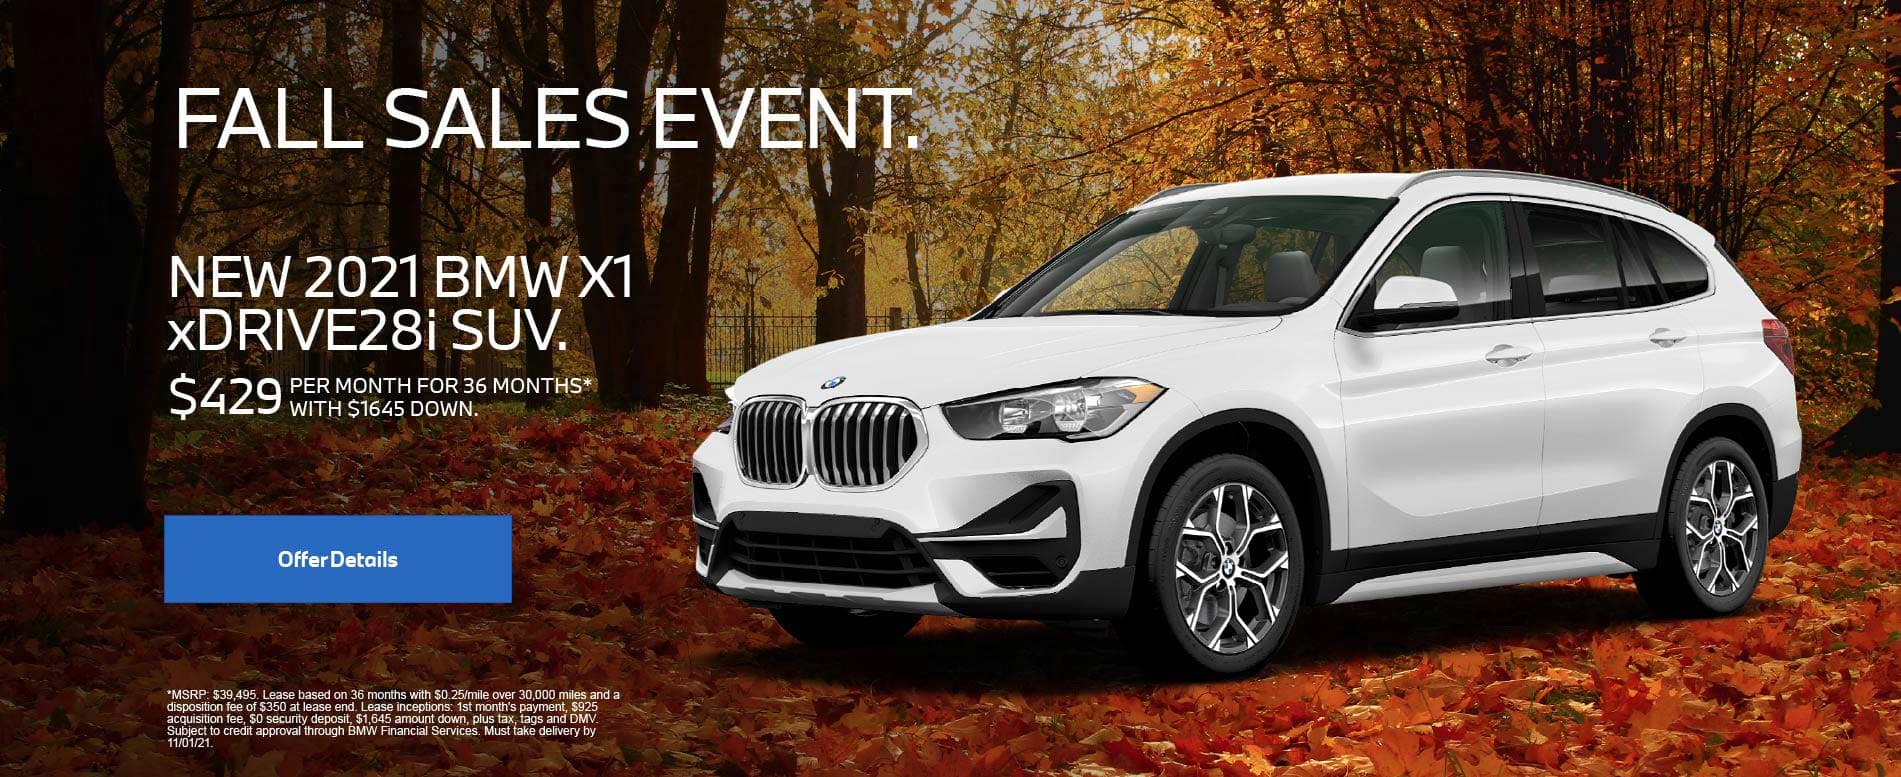 Fall Sales Event. New 2021 BMW X1 xDRIVE28i SUV. $429 Per Month for 36 months with $1645 down.